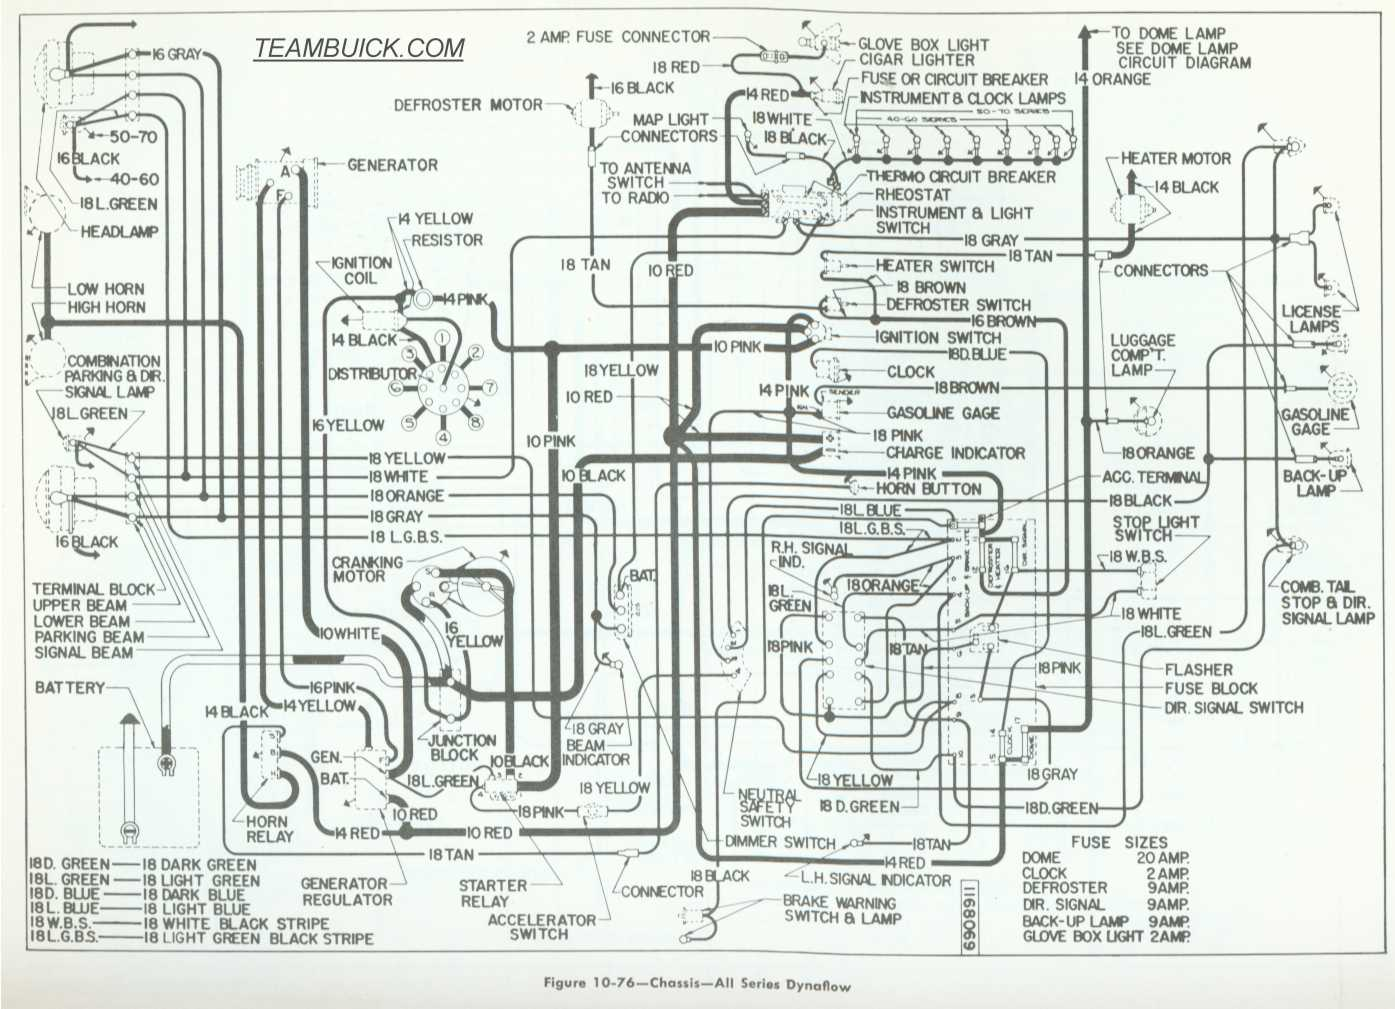 10 82 diagrams 546428 cpu wiring diagram computer wiring diagram ( 91 1955 ford wiring diagram at alyssarenee.co